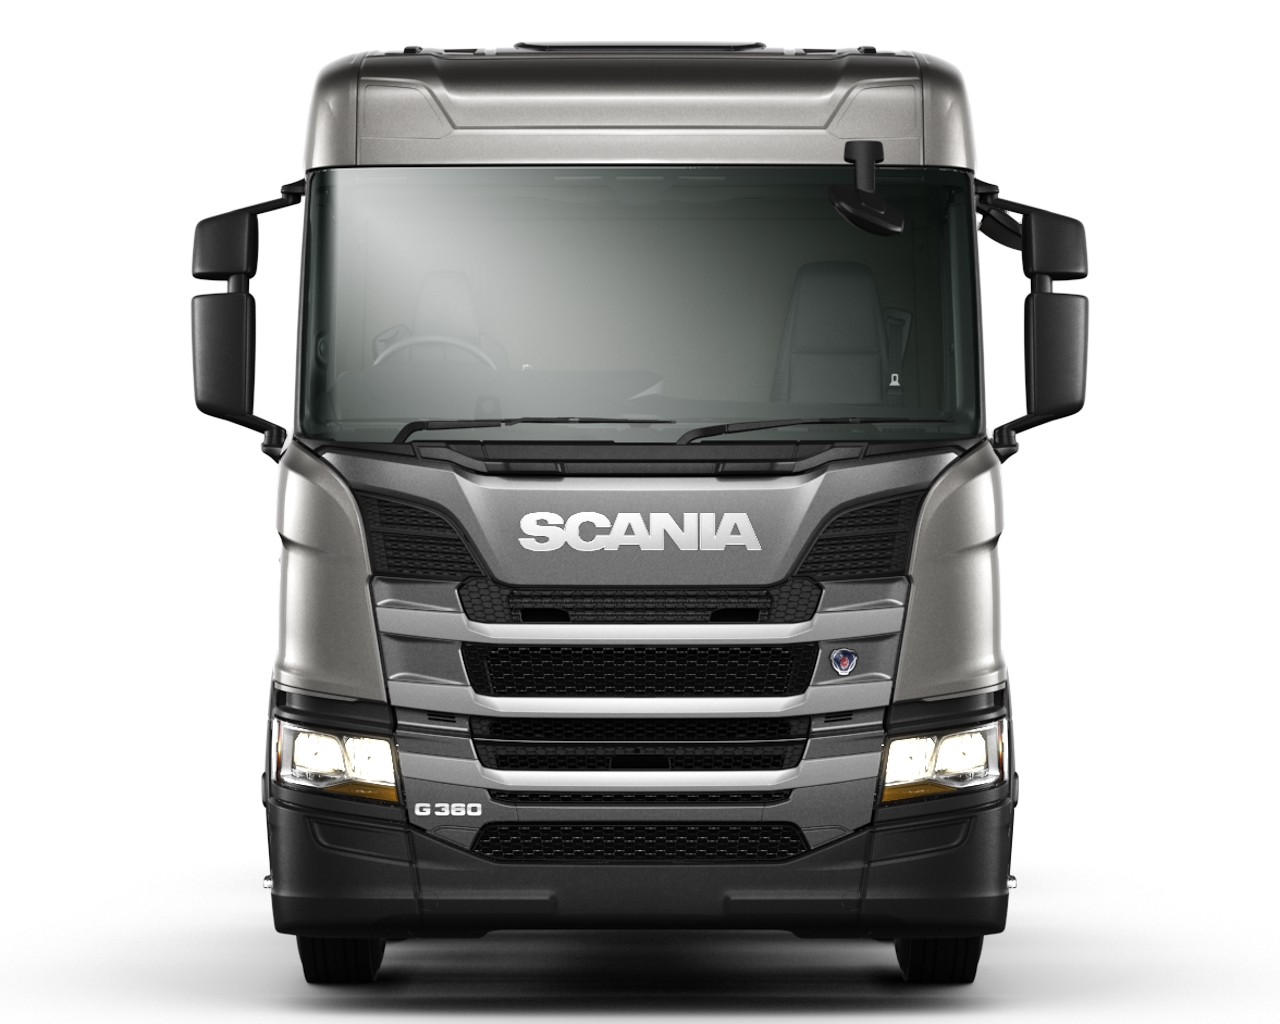 Scania G 360 B8x4NA Specifications & Technical Data (2019